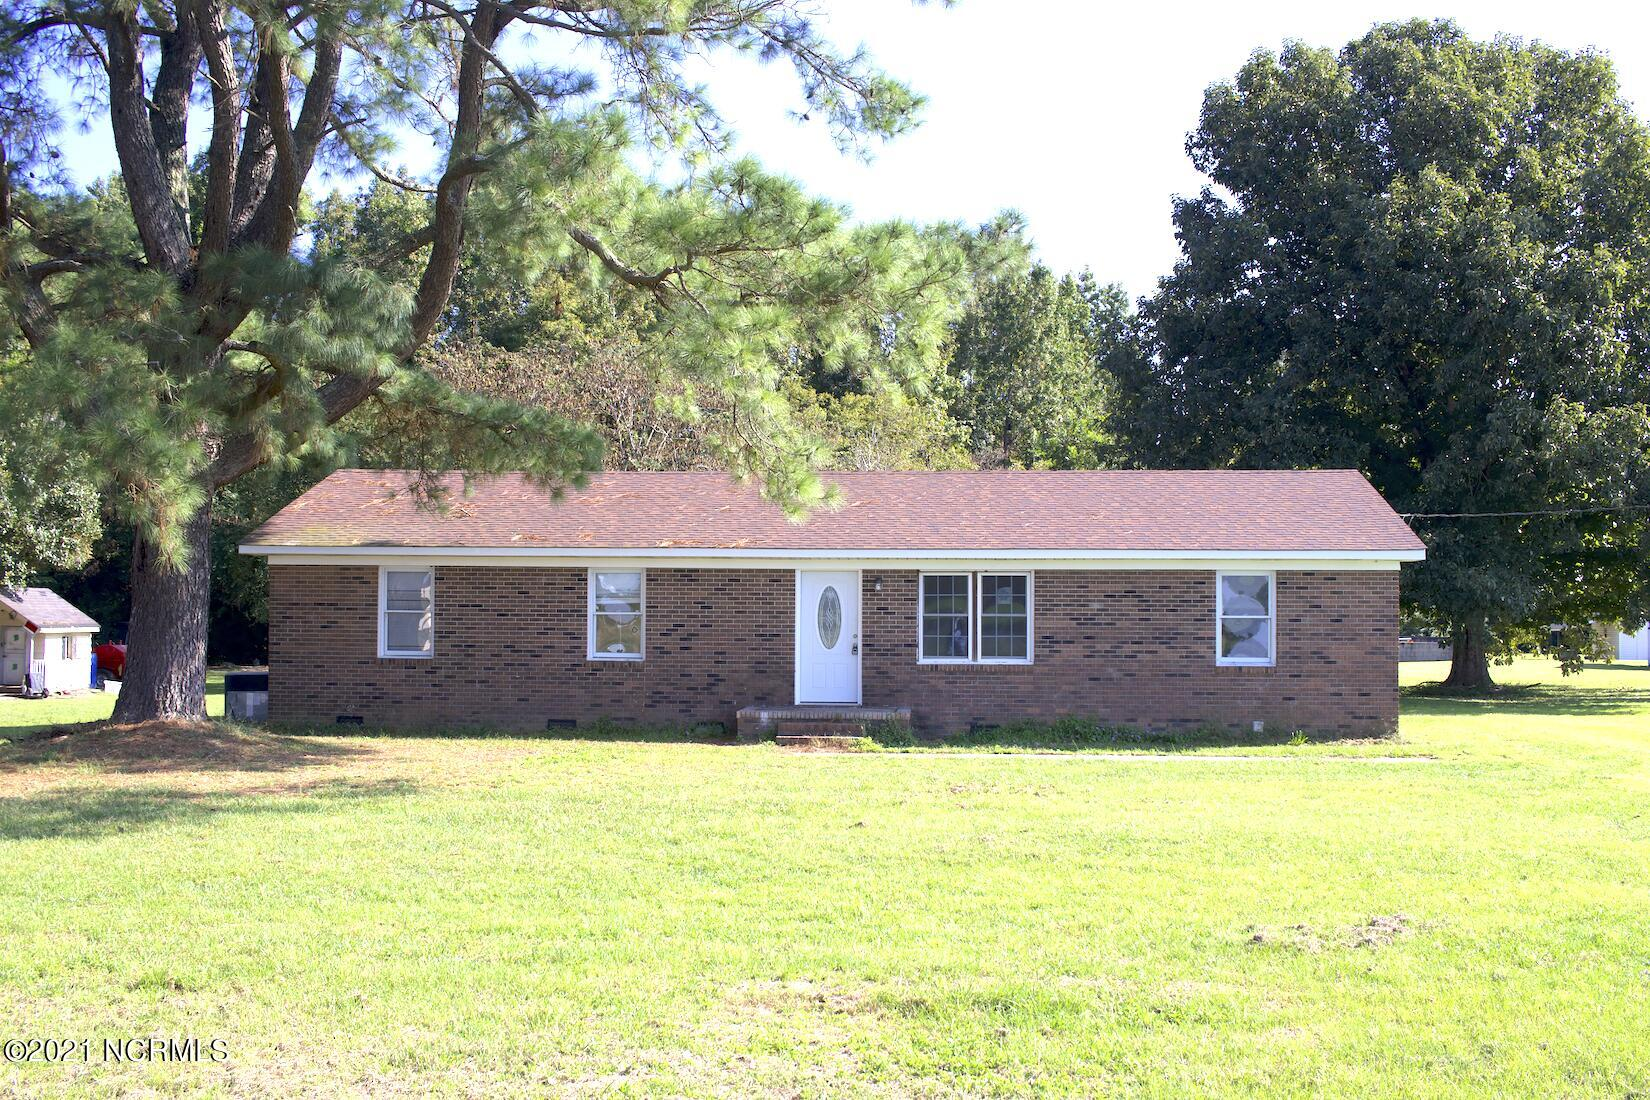 Come see this brick home in a country town just minutes from the Beulaville middle school, post office, grocery stores, and restaurants. This home has an original floor plan that includes 3 bedrooms, 1 and a half baths, kitchen and dining room combo, a carport in the back, plus a garage with a back entrance. This house has a roof that was replaced in 2019 by the previous owner, updated floors in the living room, kitchen and hallway, as well as two new windows in the living room, plus a new front door. In the bedrooms you will find the well-maintained original pine wood floors with reasonable closet space and new blinds. This home has been freshly painted and professionally cleaned. The garage is not included in the house square footage but you have approximately 300 square feet of extra space to park a vehicle, make a home gym, or use as storage space. The laundry room is also located in the garage to maximize your living space. This charming home could be a great investment property or perfect for the first-time home buyer who is willing to put in a little bit of sweet equity.